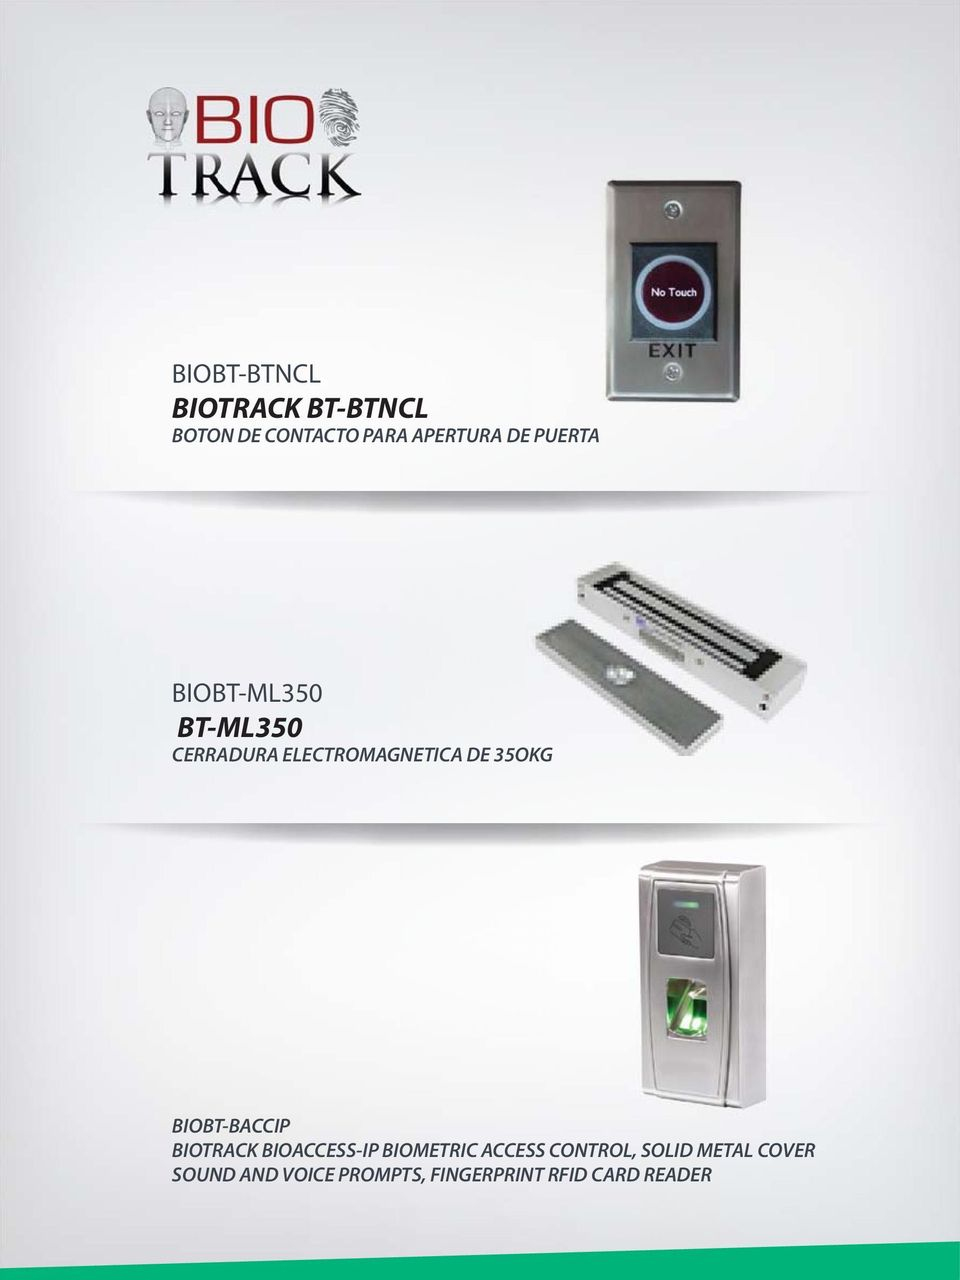 BIOBT-BACCIP BIOTRACK BIOACCESS-IP BIOMETRIC ACCESS CONTROL,